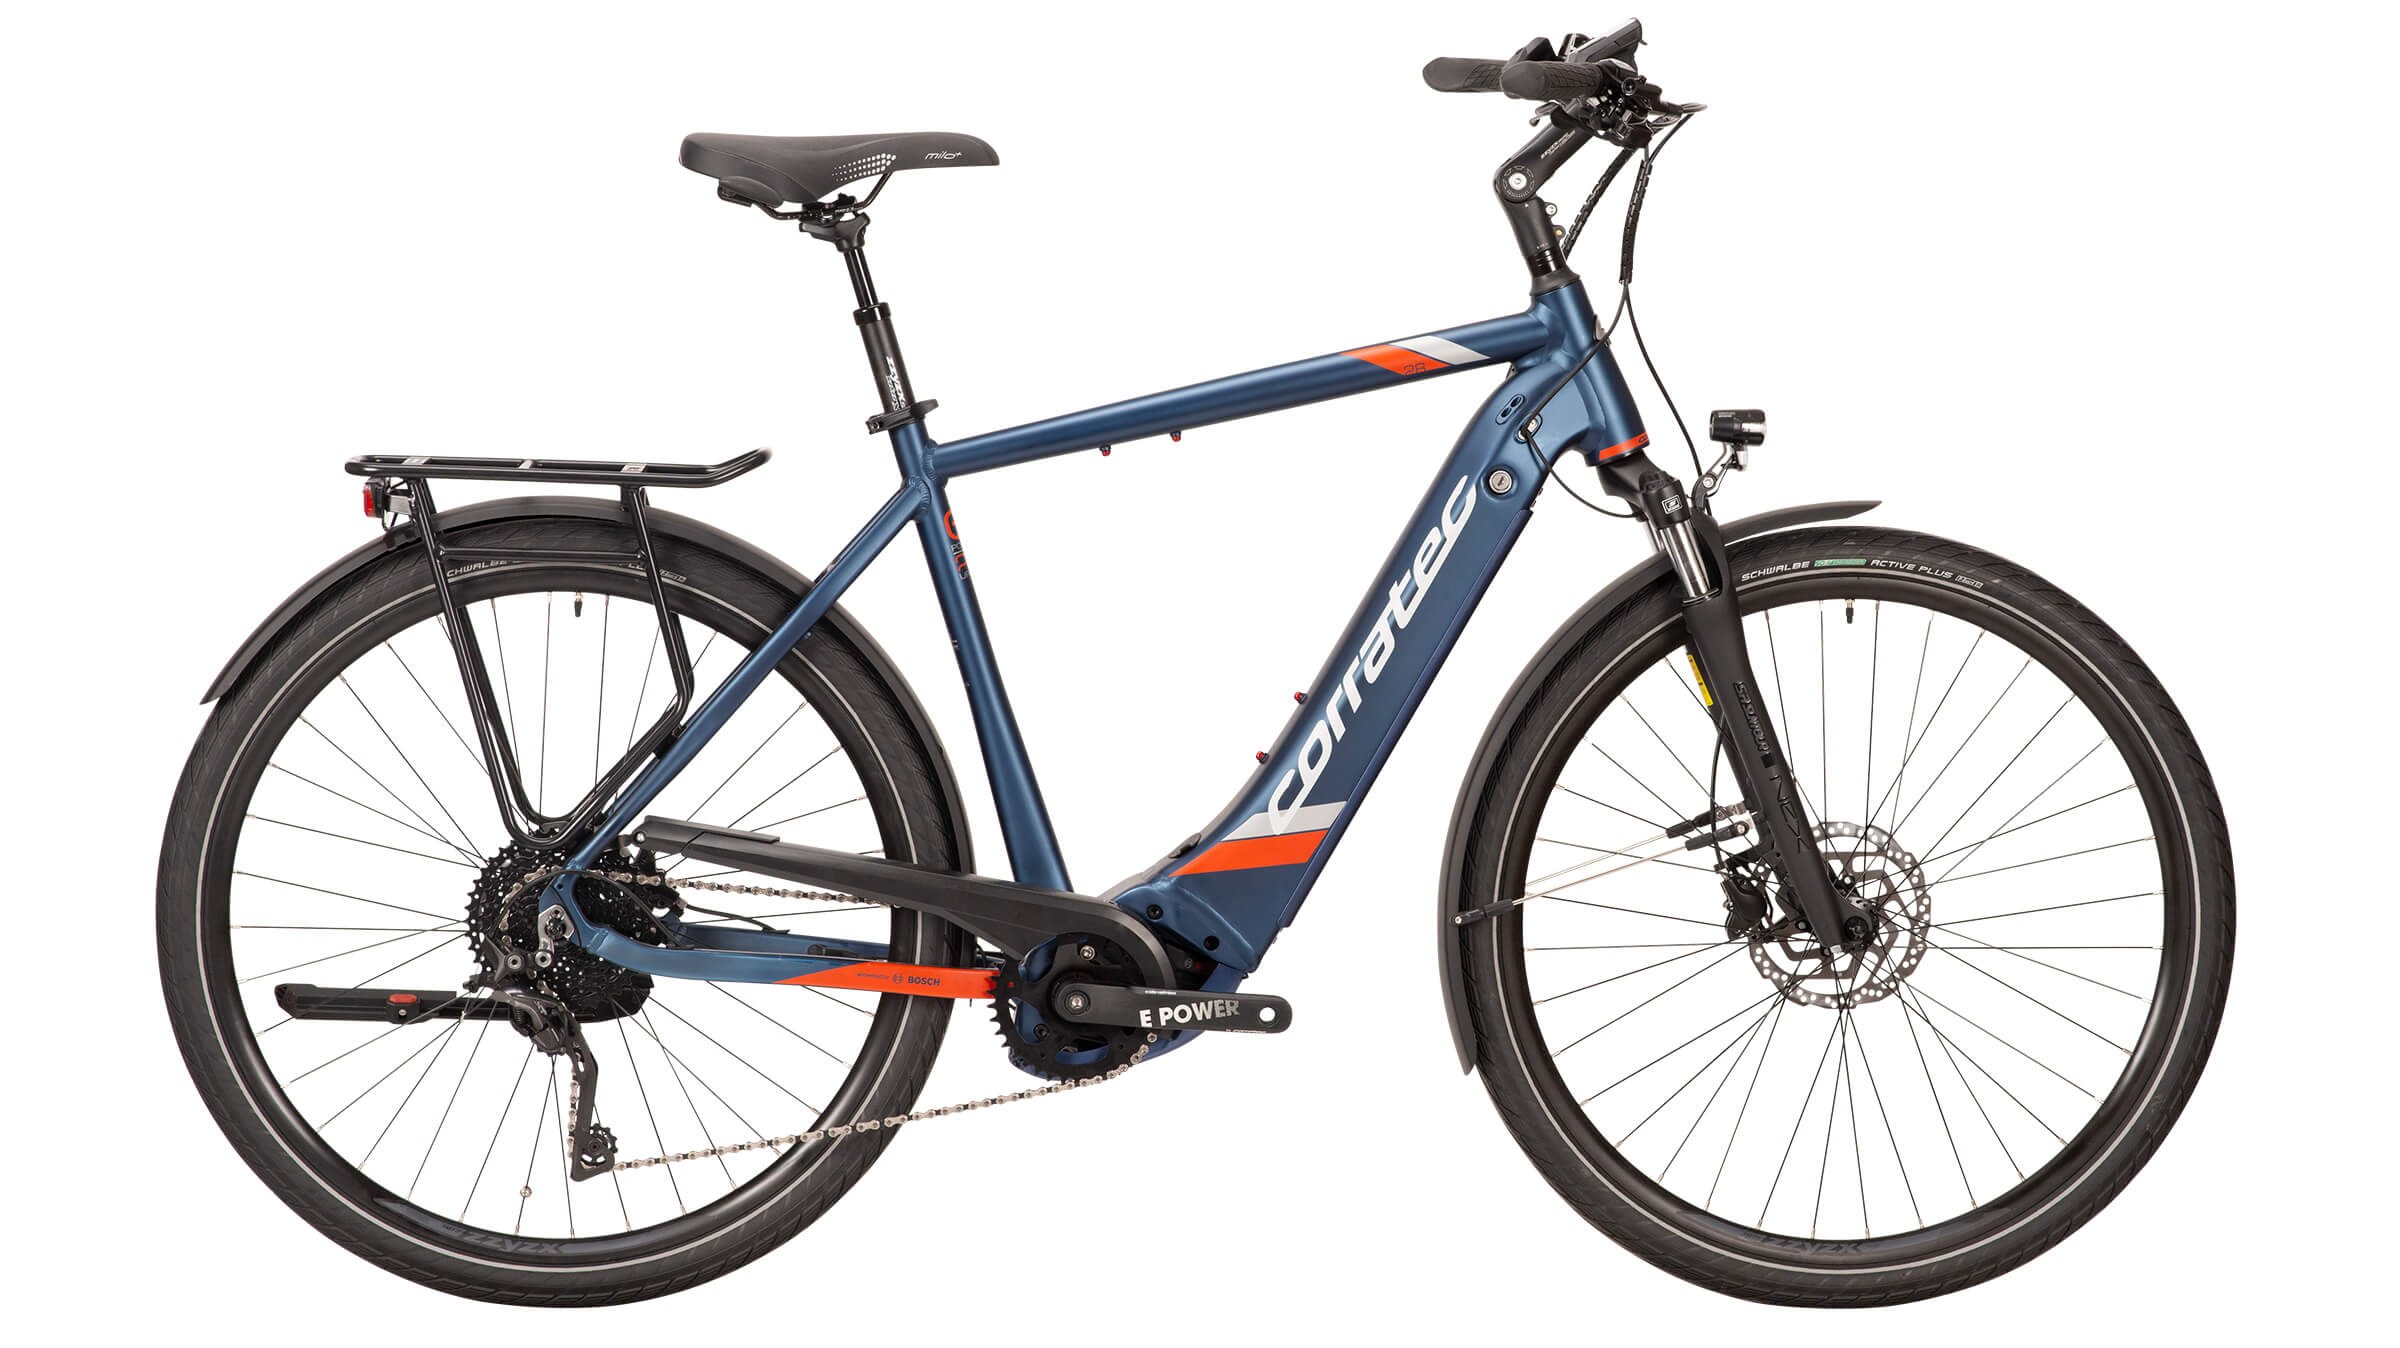 CORRATEC E-POWER URBAN CX6 Gent 625Wh blue 2020